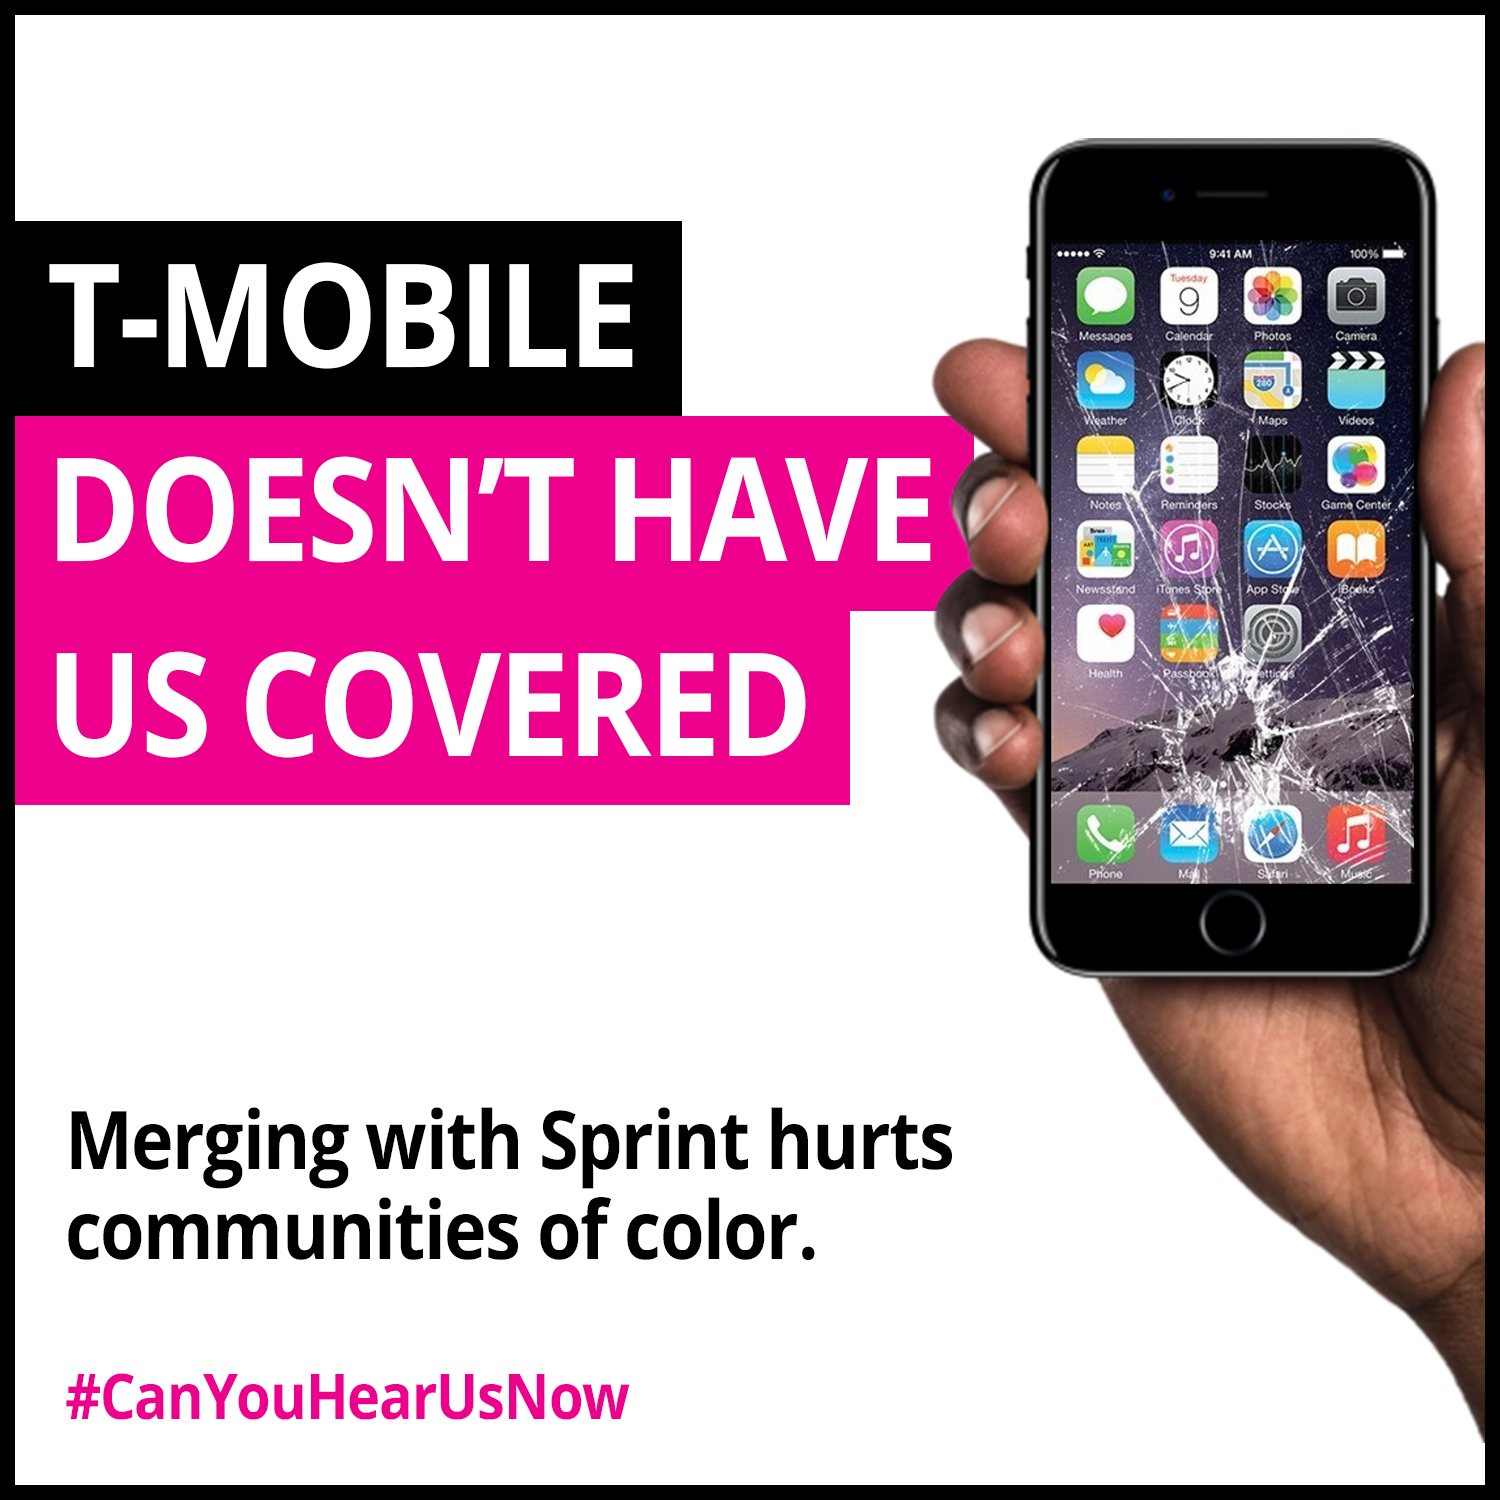 T-Mobile doesn't have us covered.